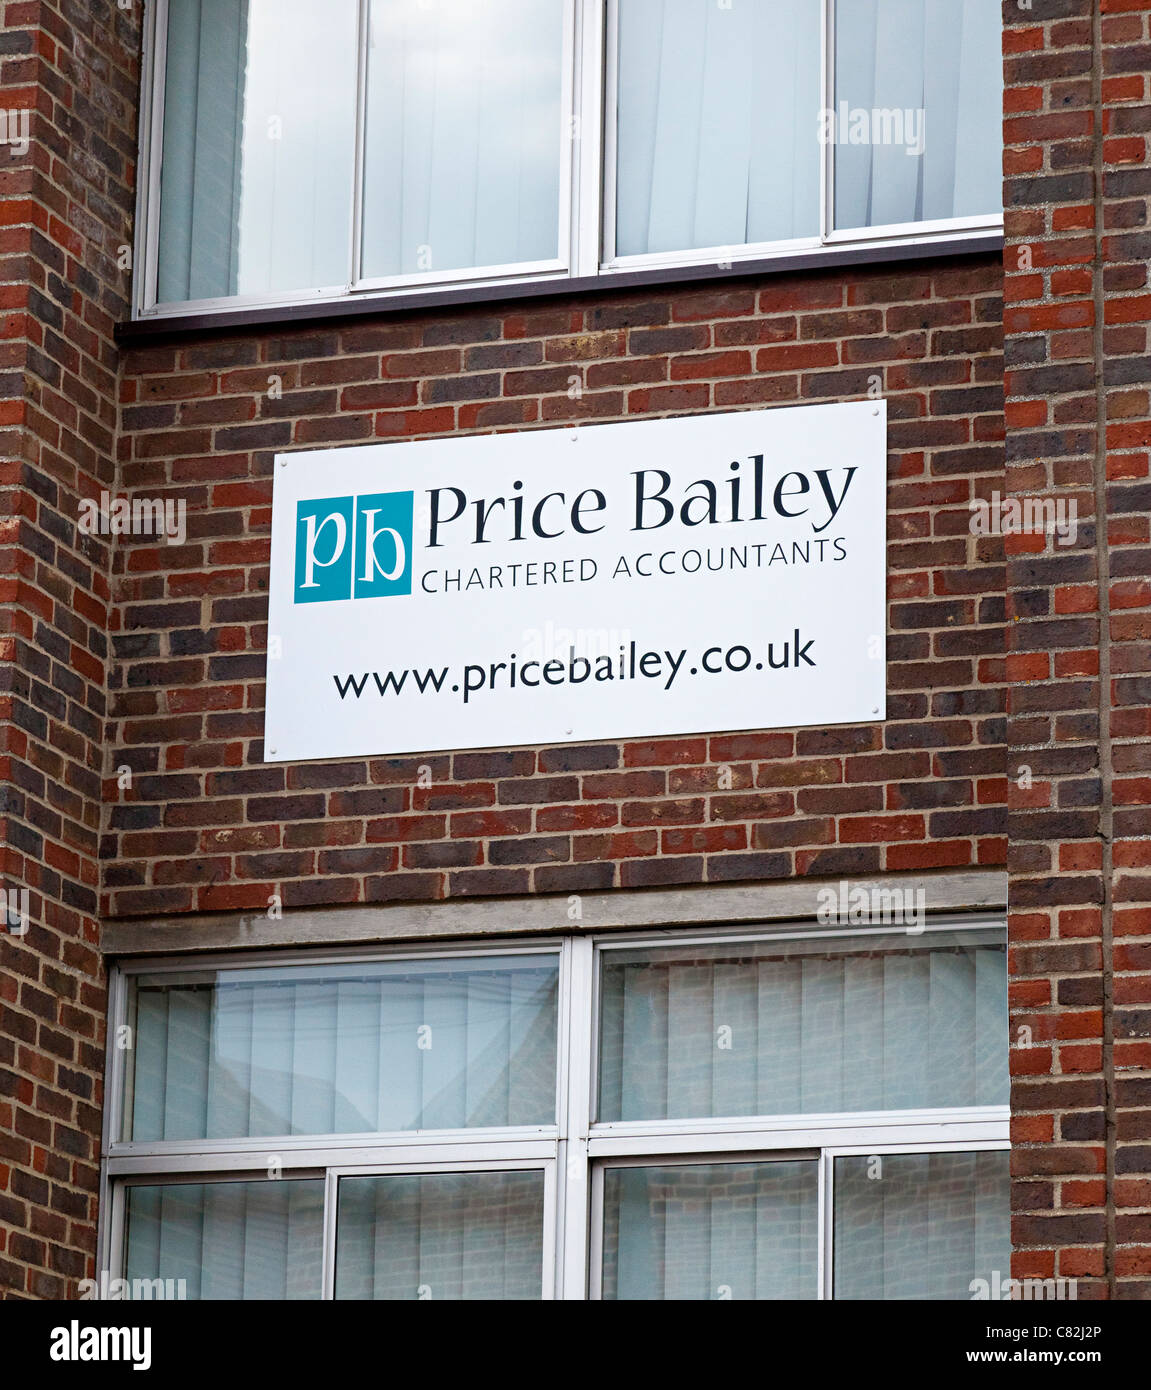 Price Bailey charted accountants, UK - Stock Image